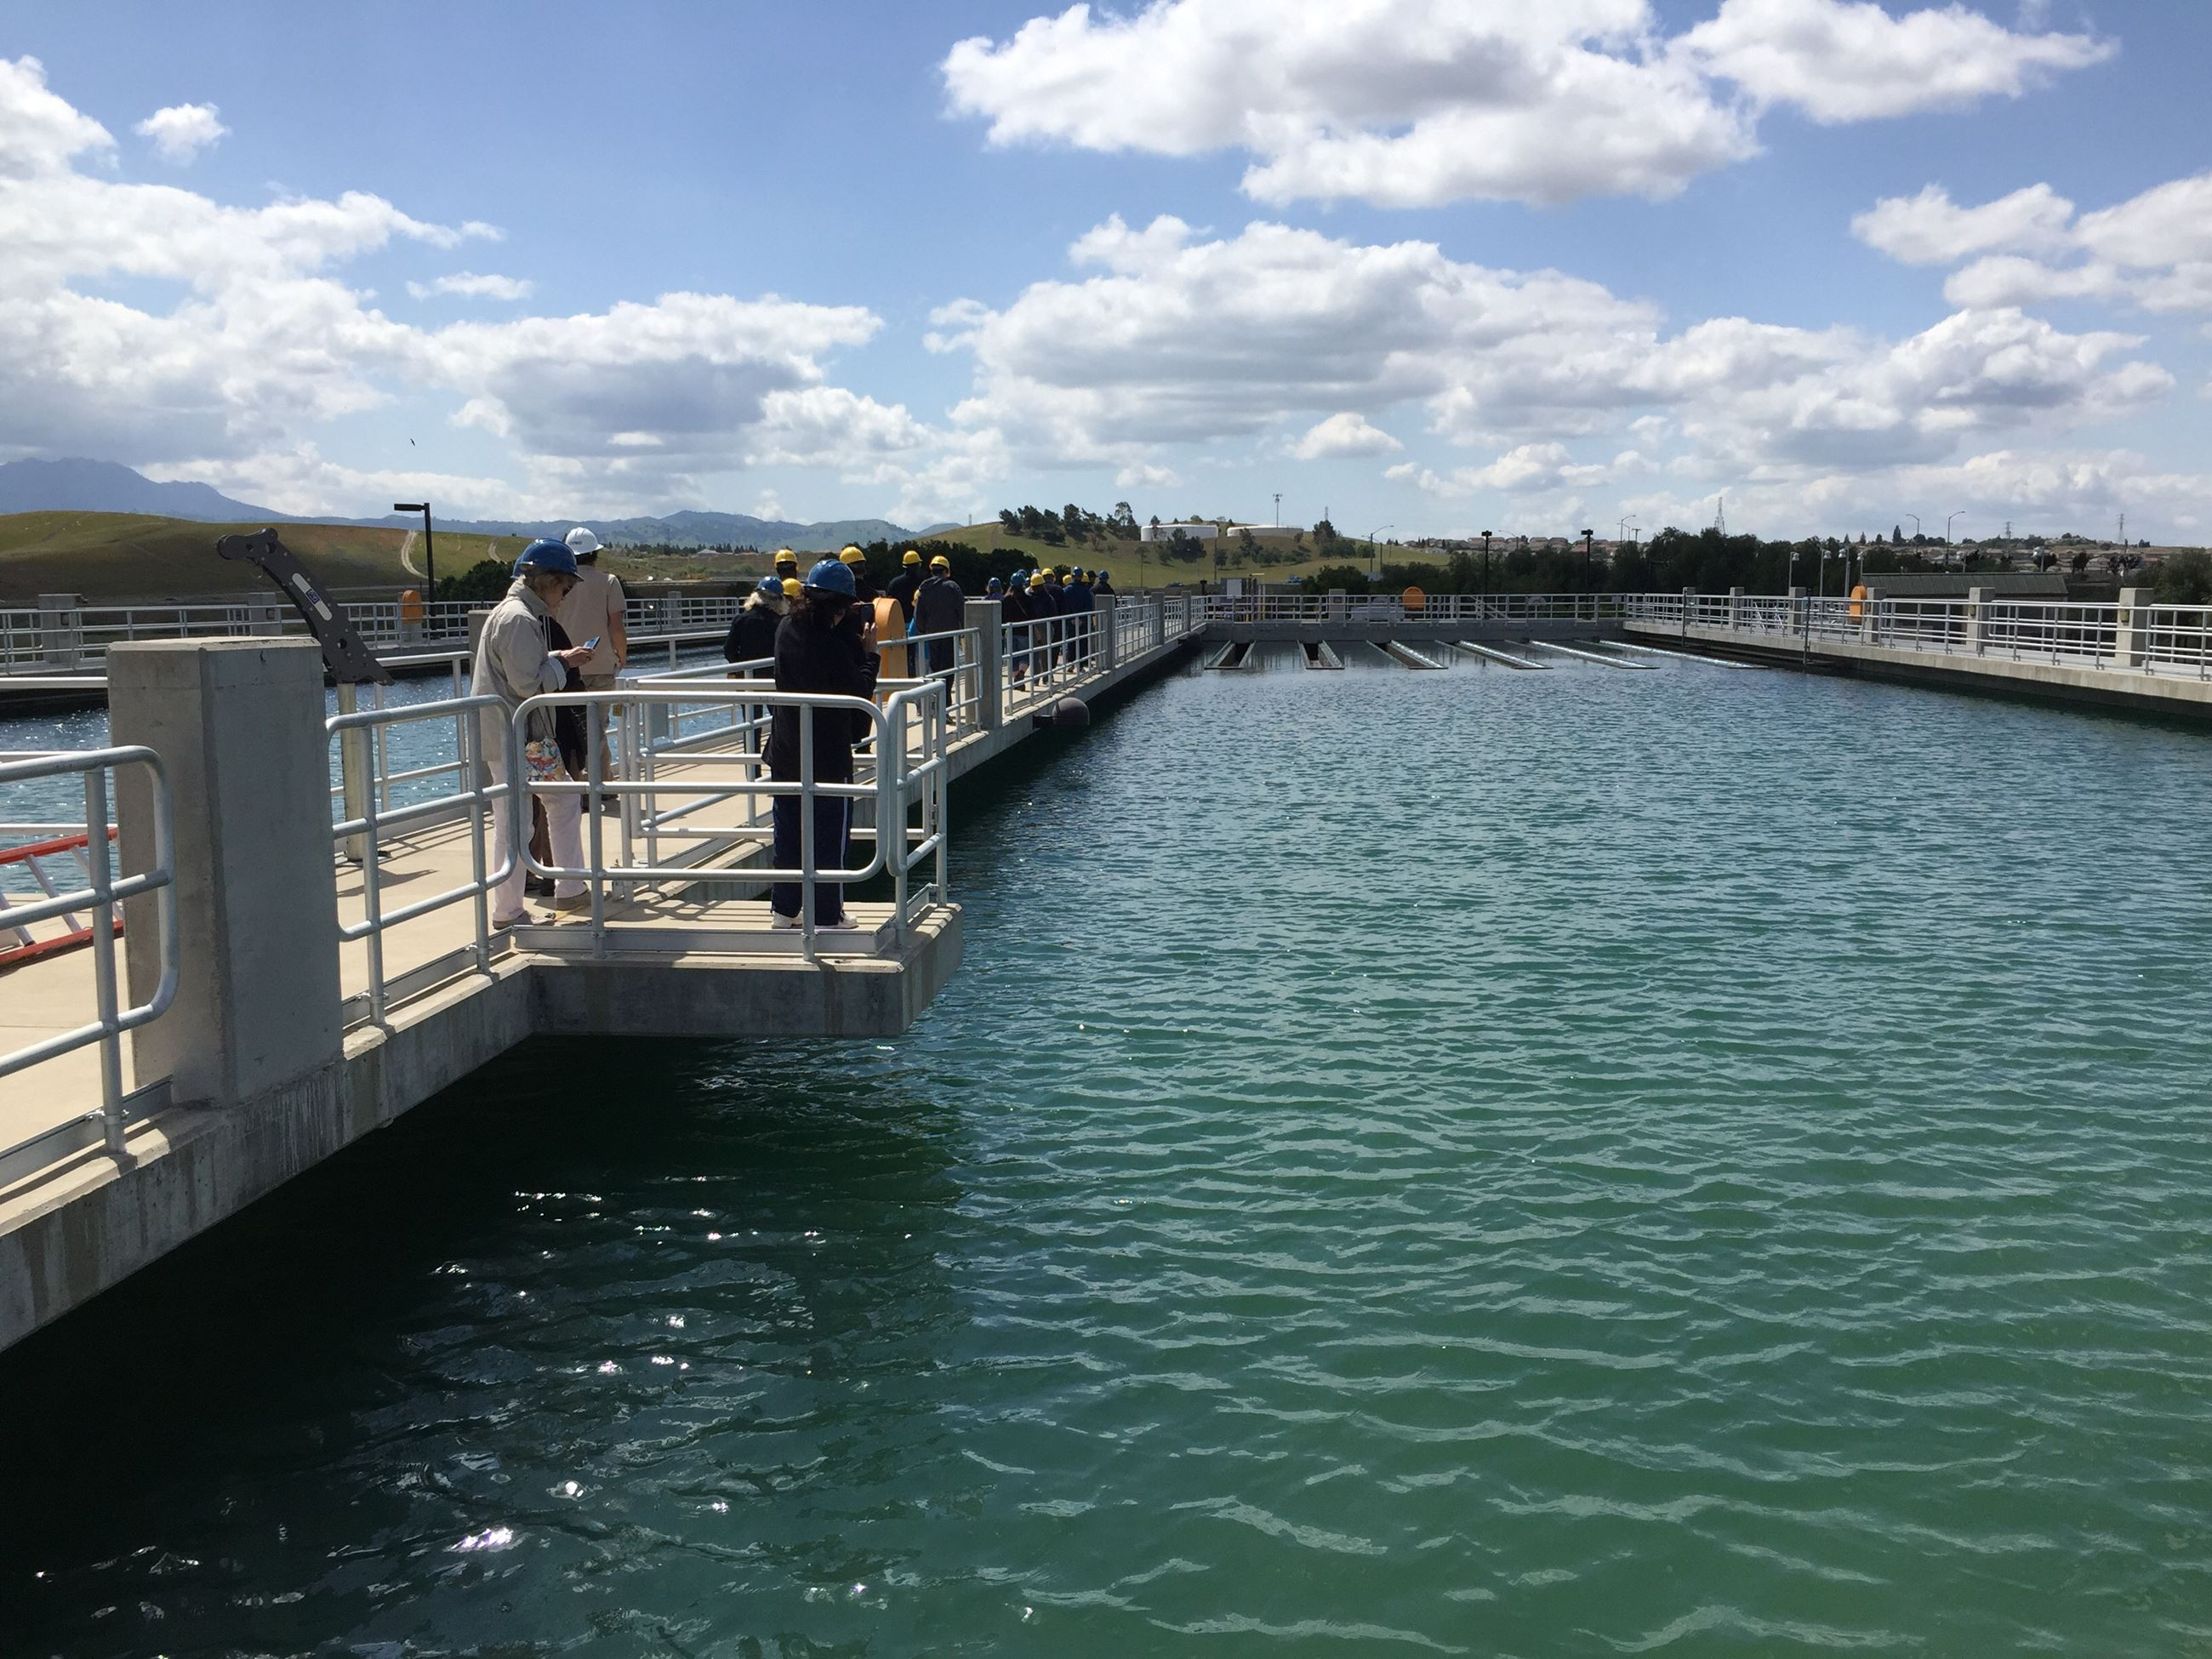 Randall-Bold Water Treatment Plant - Public Tour